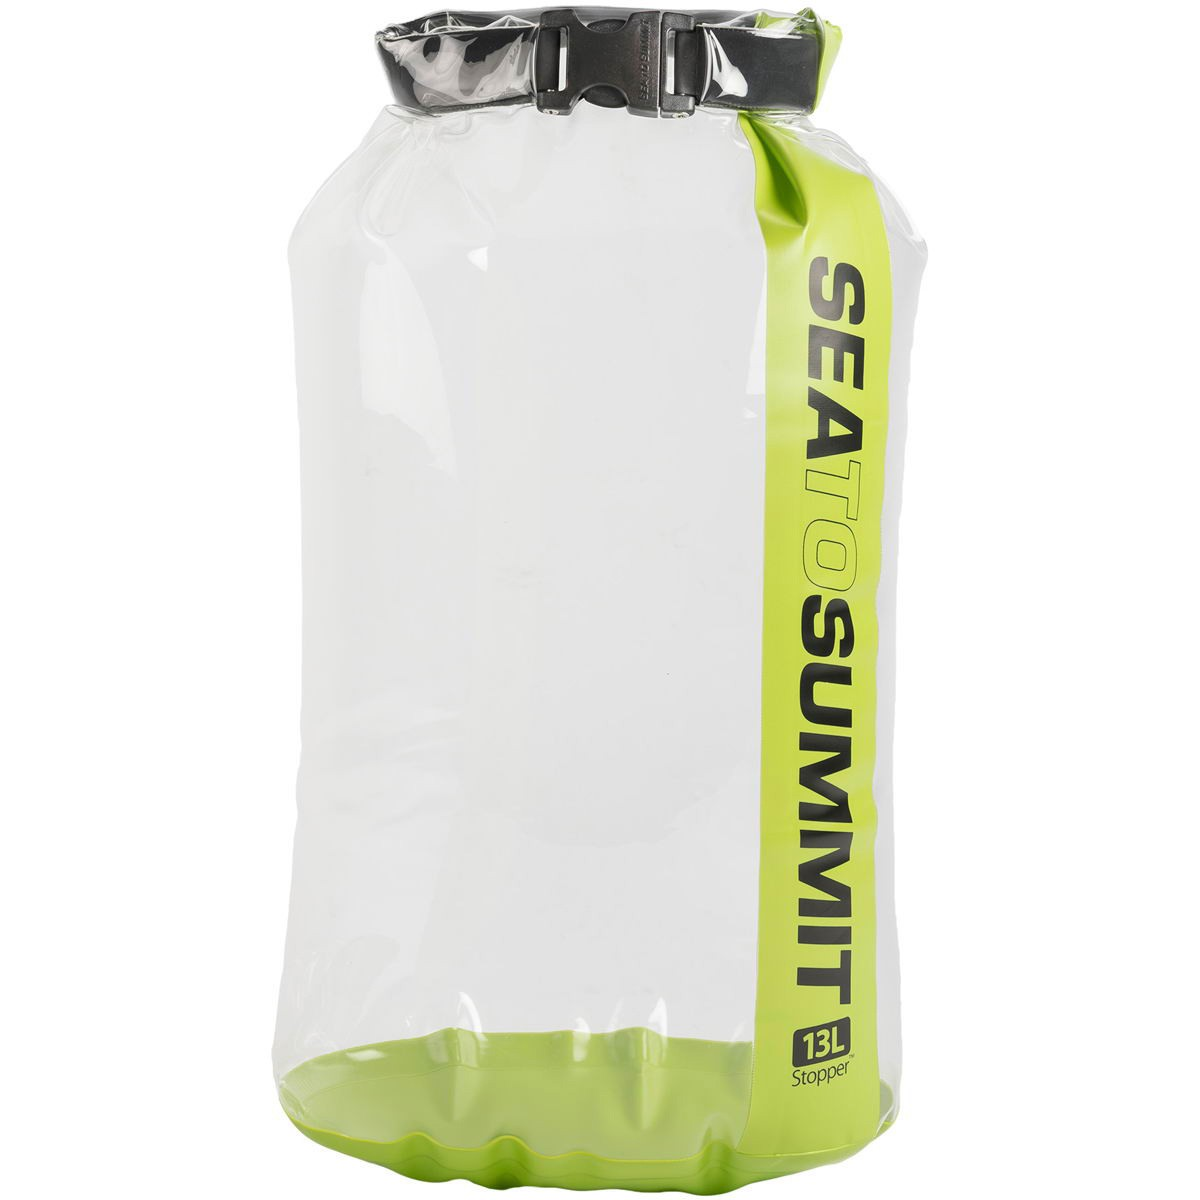 Sea To Summit Stopper Clear Dry Bag 13L Green